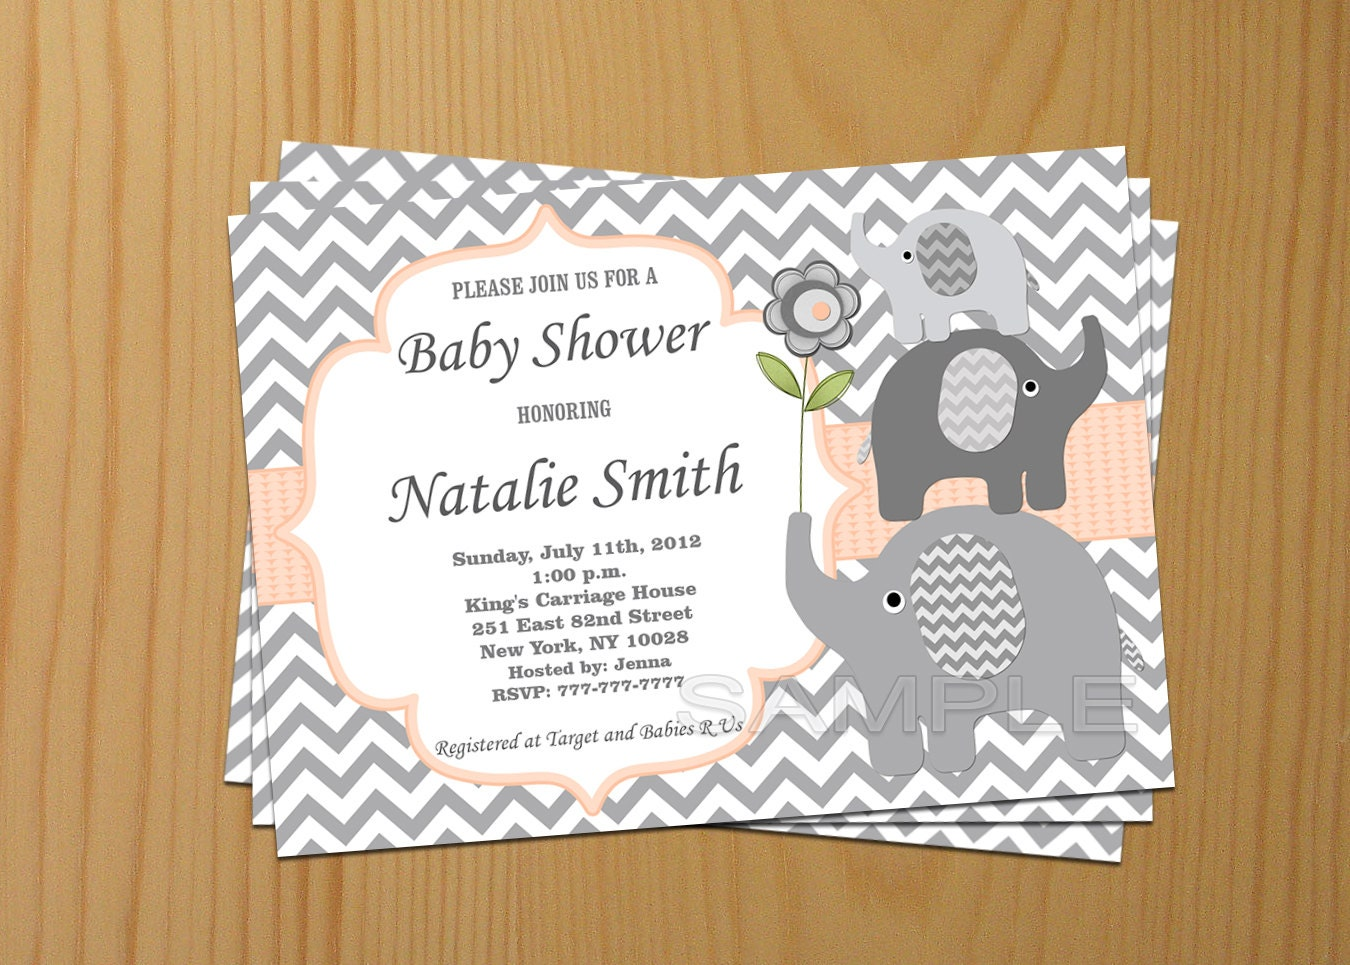 Best Resumes And Templates For Your Business   Ggec.co  Baby Shower Invitation Backgrounds Free